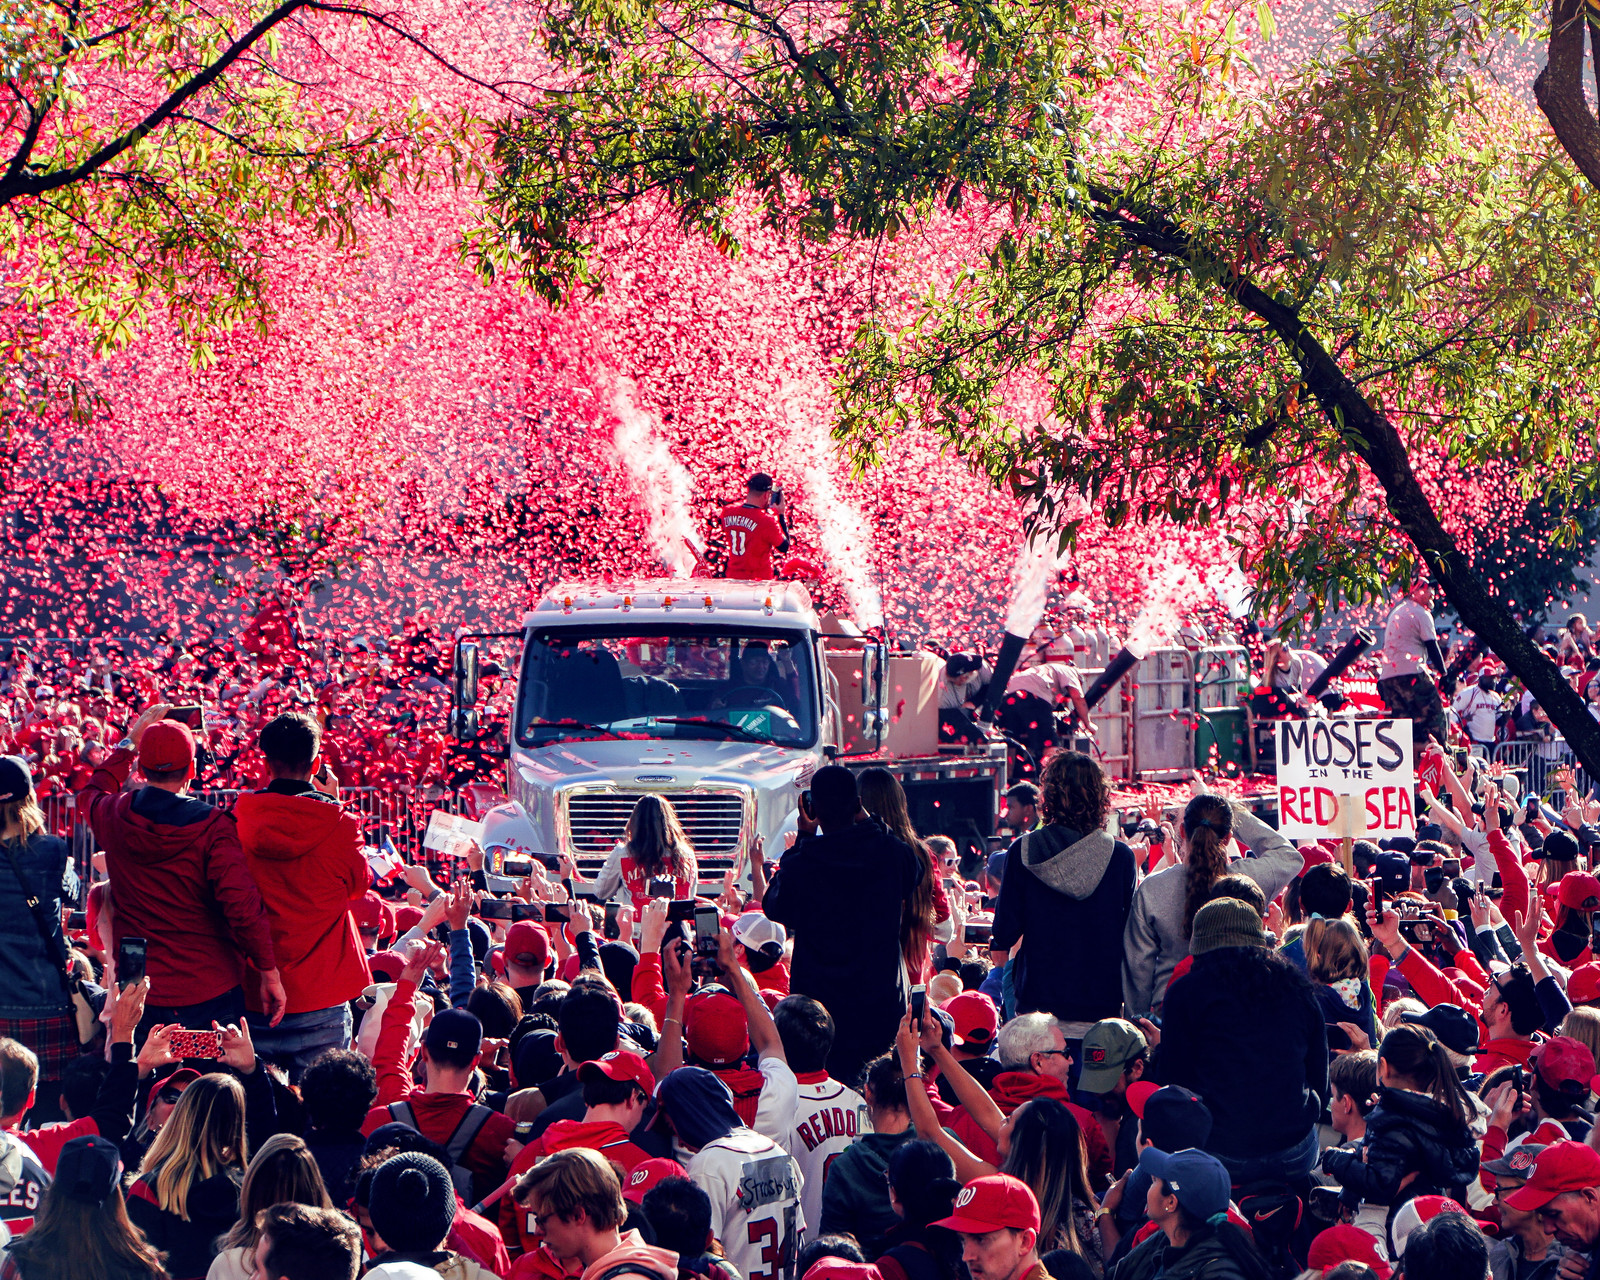 2019.11.02 Washington Nationals Victory Parade, Washington, DC USA 306 61050